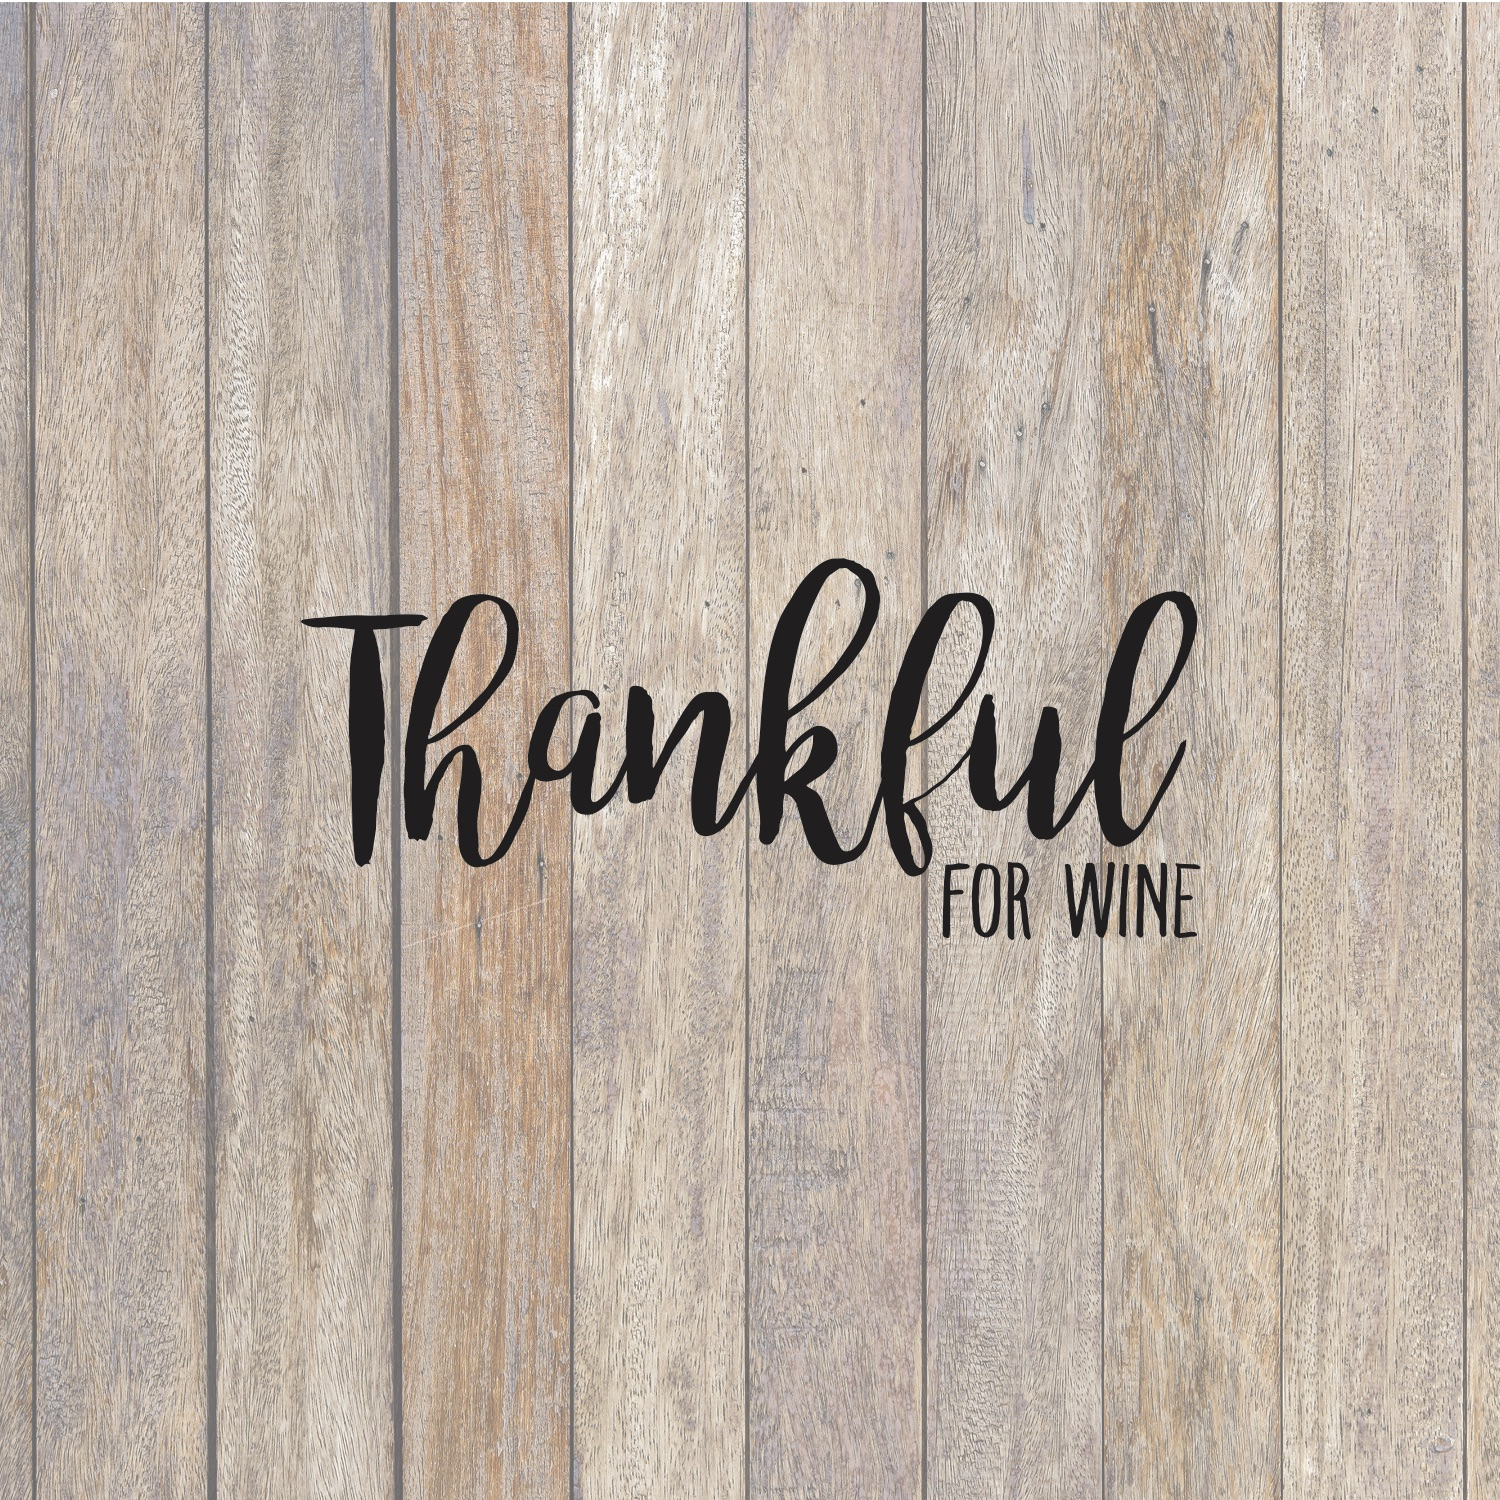 Free Holidays / seasons, moms/mothers, svg cutting files tags: Thankful For Wine Svg Thanksgiving Svg Holiday Svg SVG, PNG, EPS, DXF File